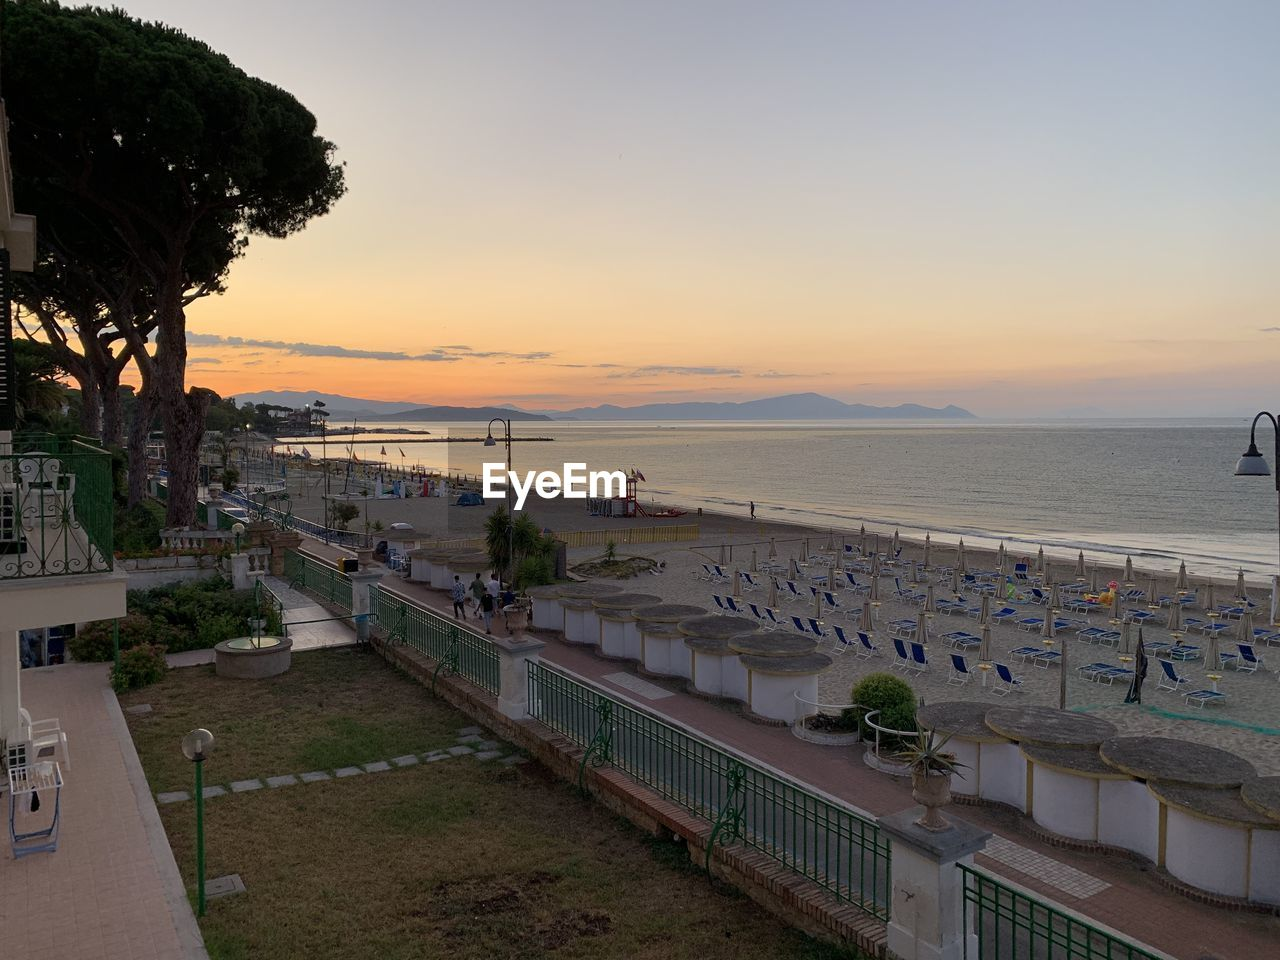 sunset, sky, sea, water, architecture, horizon over water, scenics - nature, nature, beauty in nature, plant, horizon, tree, land, built structure, orange color, beach, tranquility, building exterior, tranquil scene, no people, outdoors